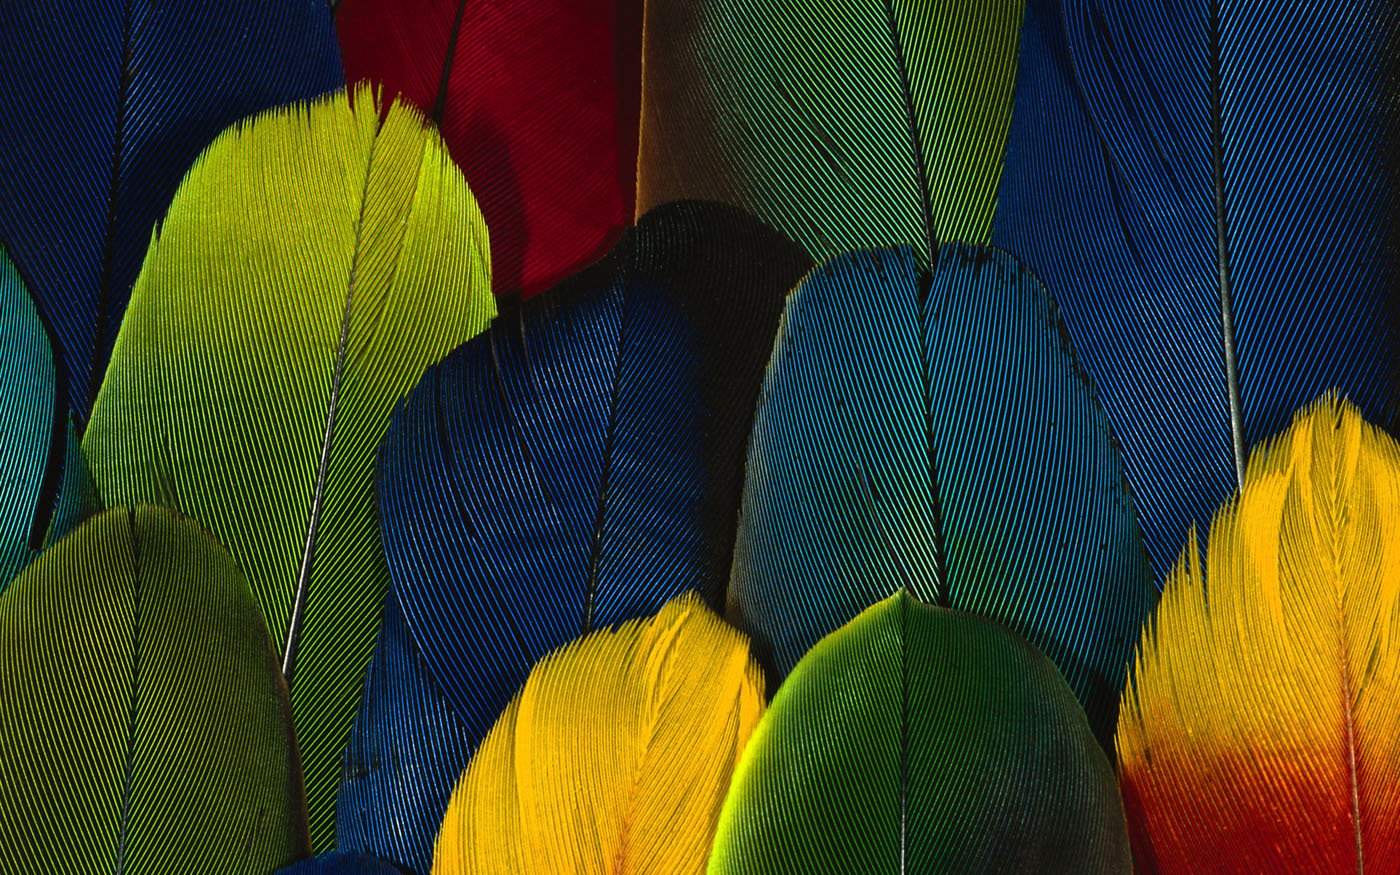 Feather wings close-up 29556